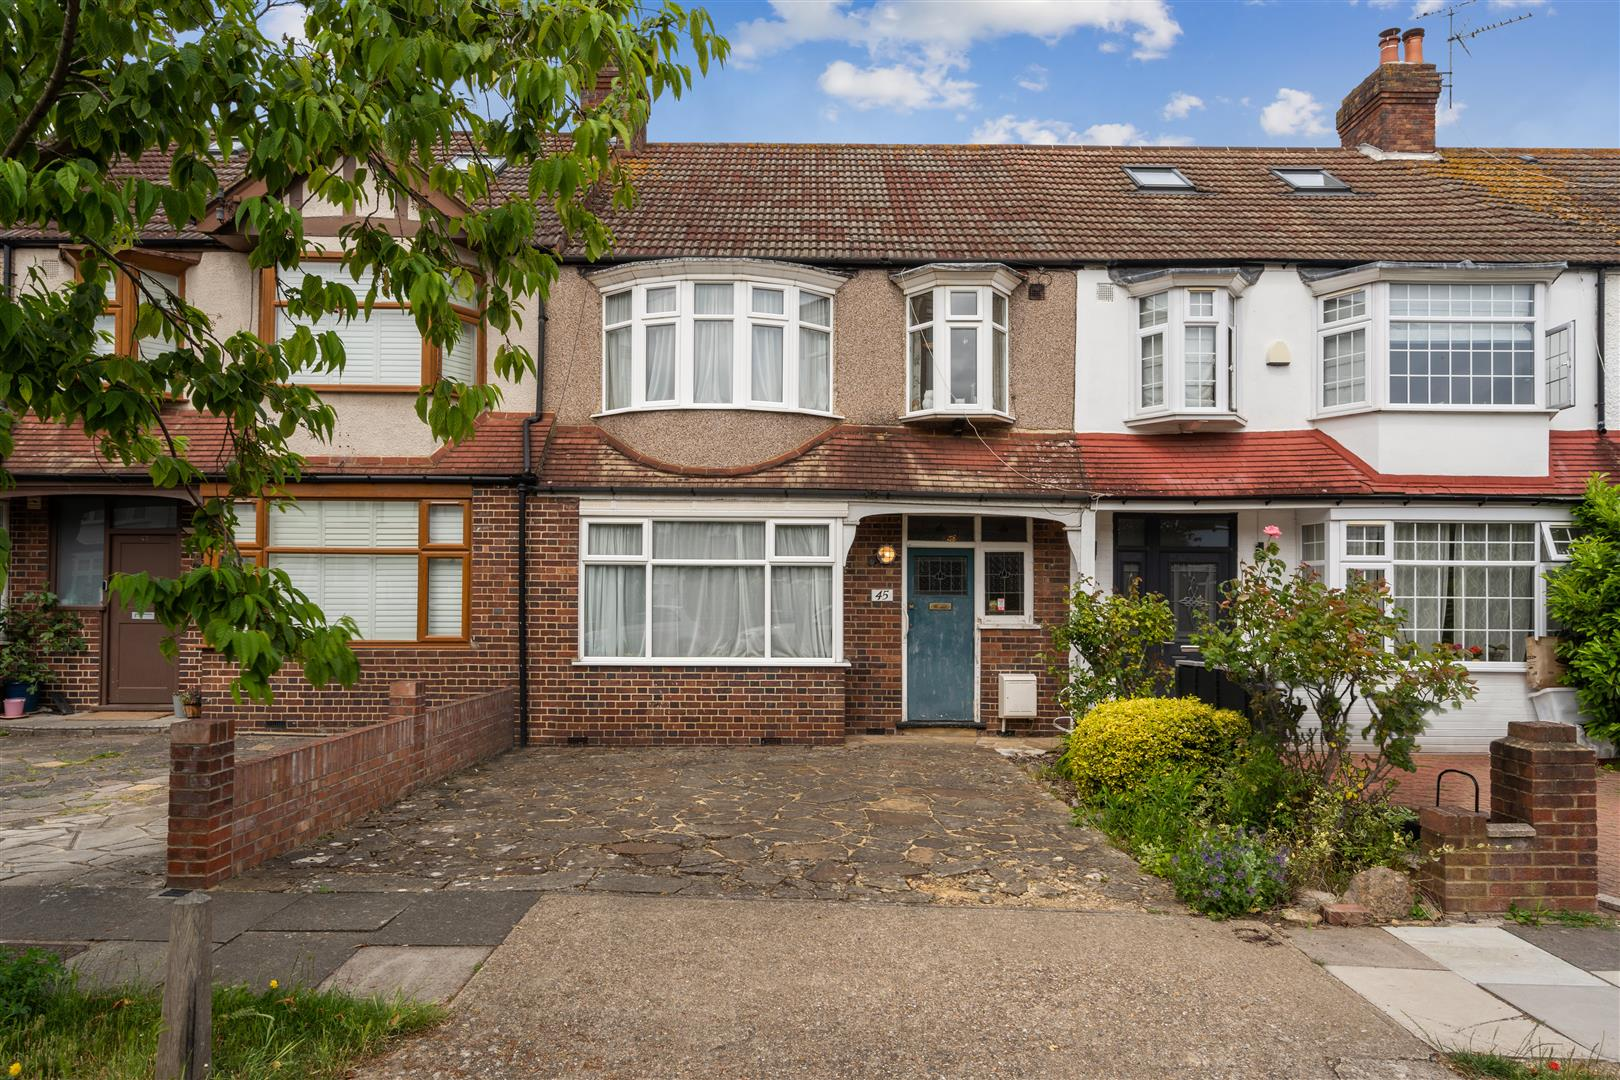 Southway, Raynes Park